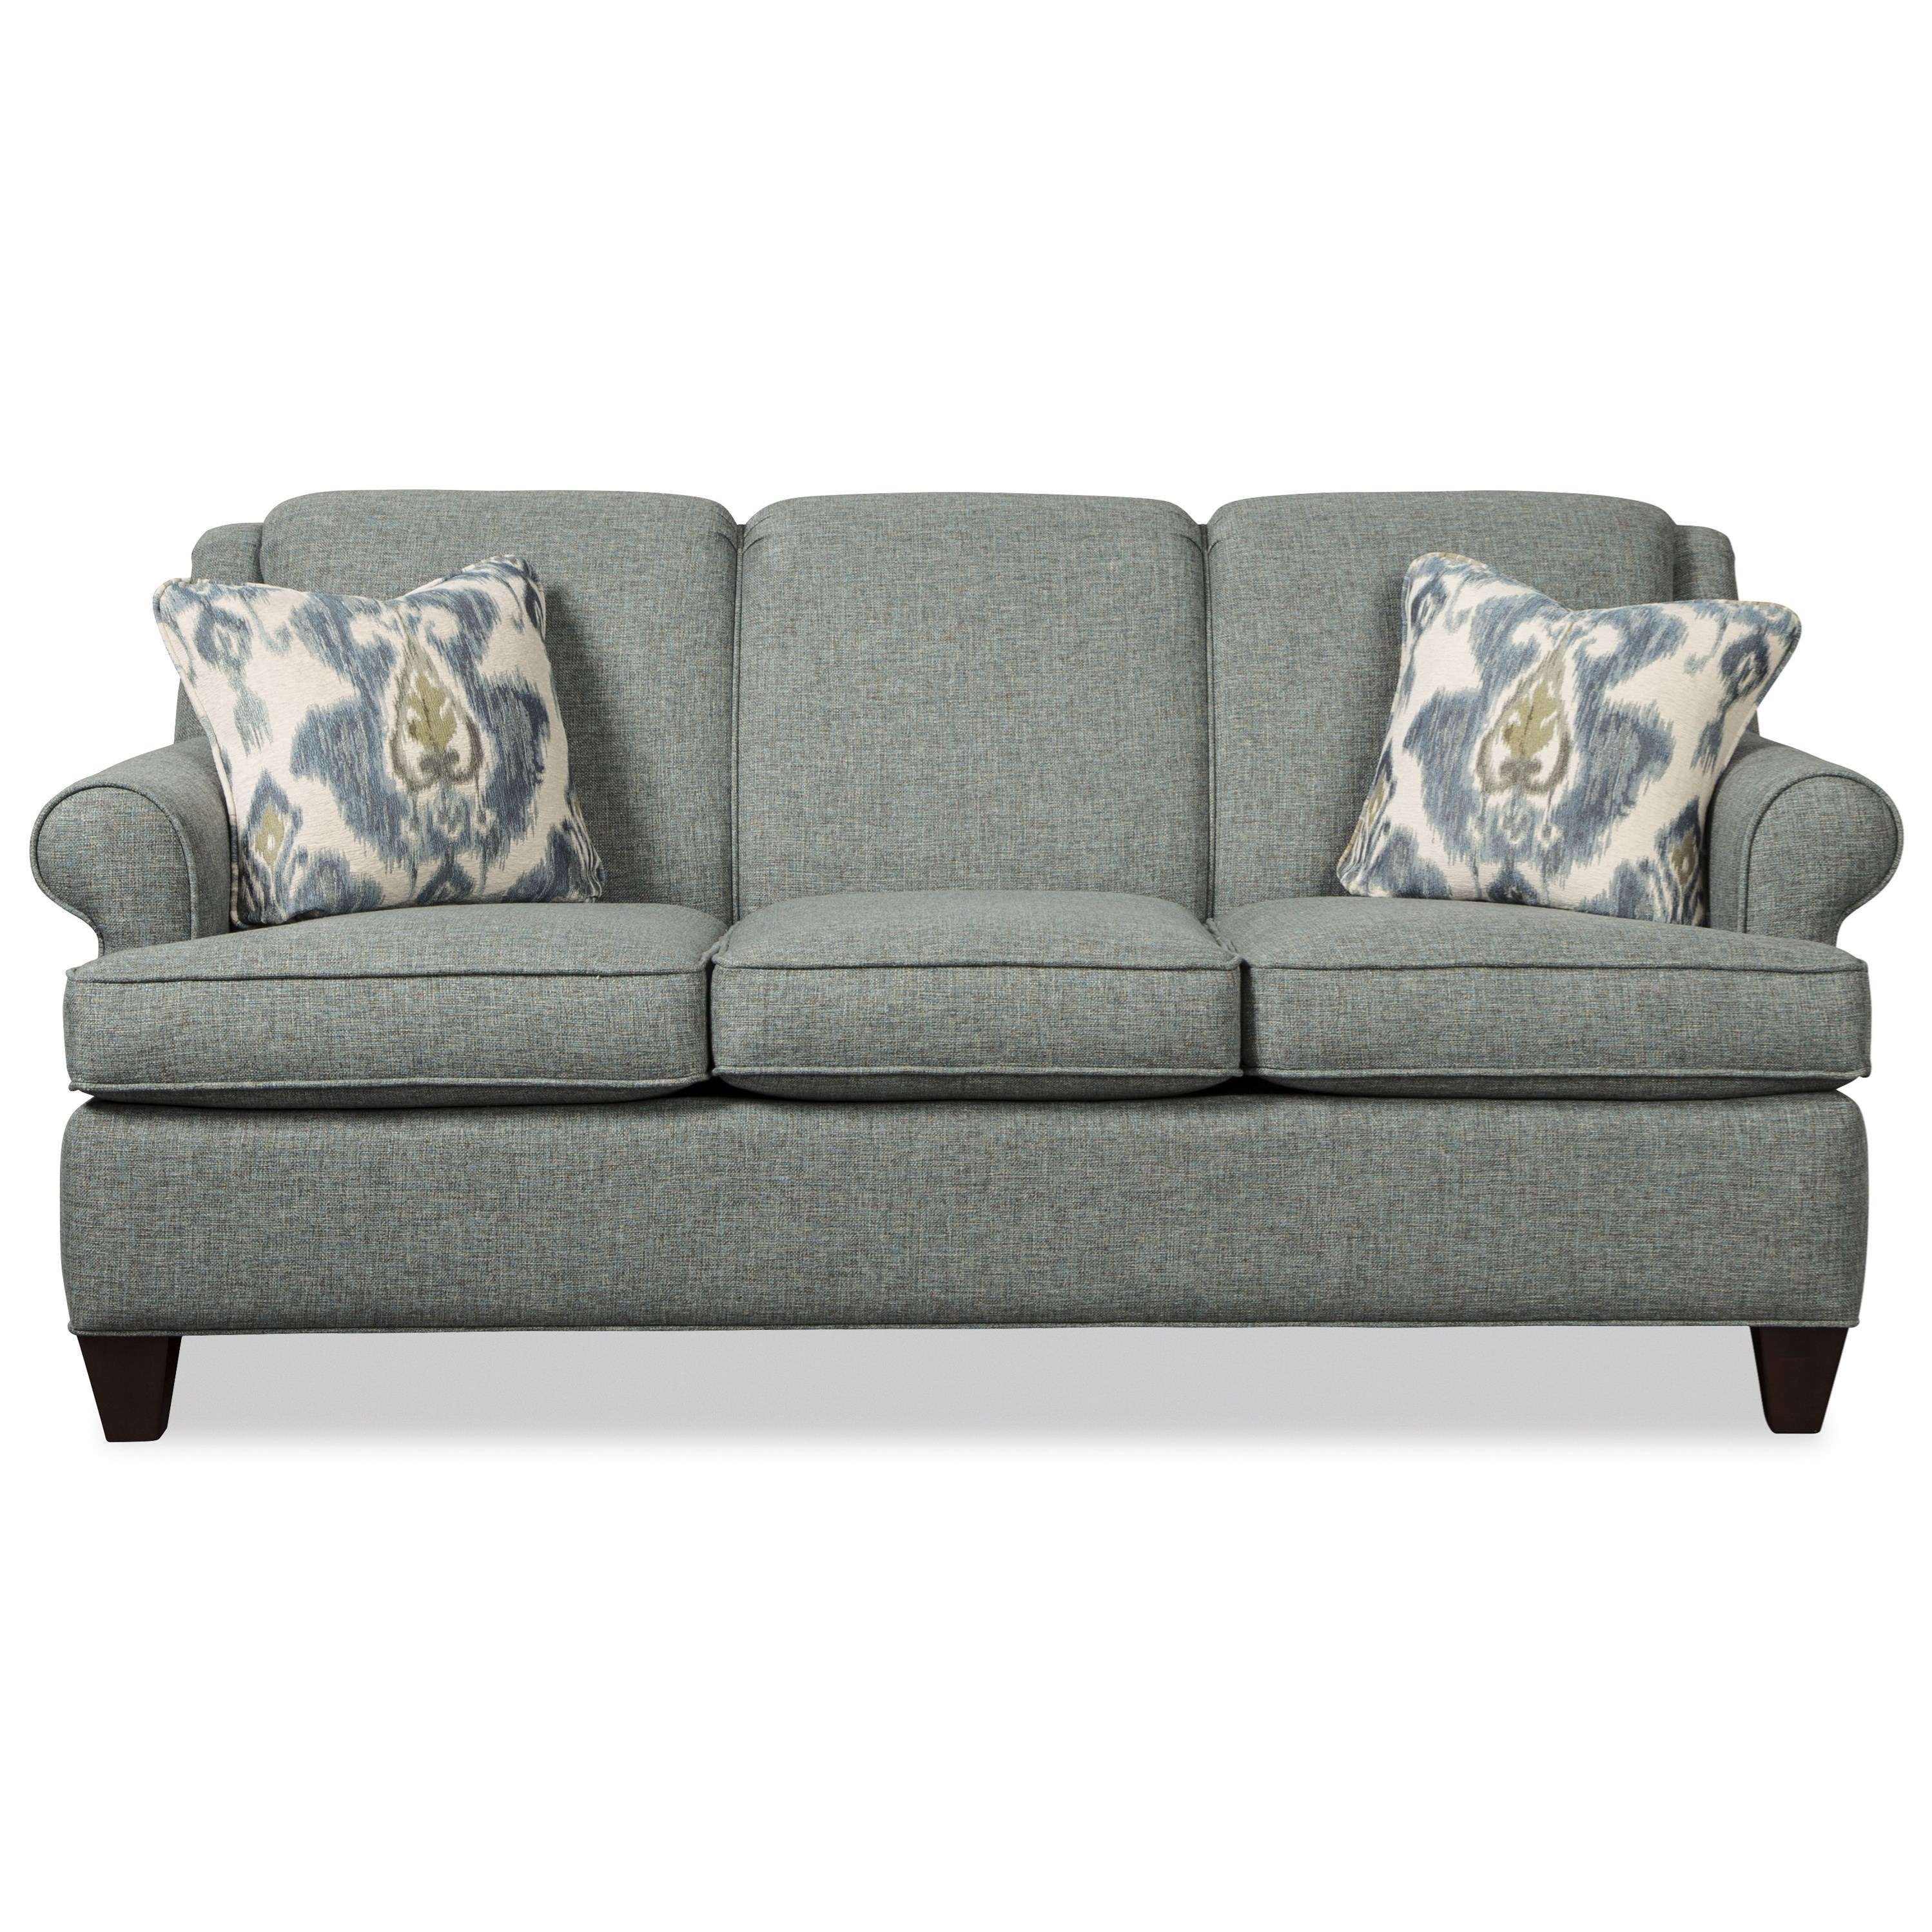 Craftmaster 781850 Transitional 73 Inch Sleeper Sofa With